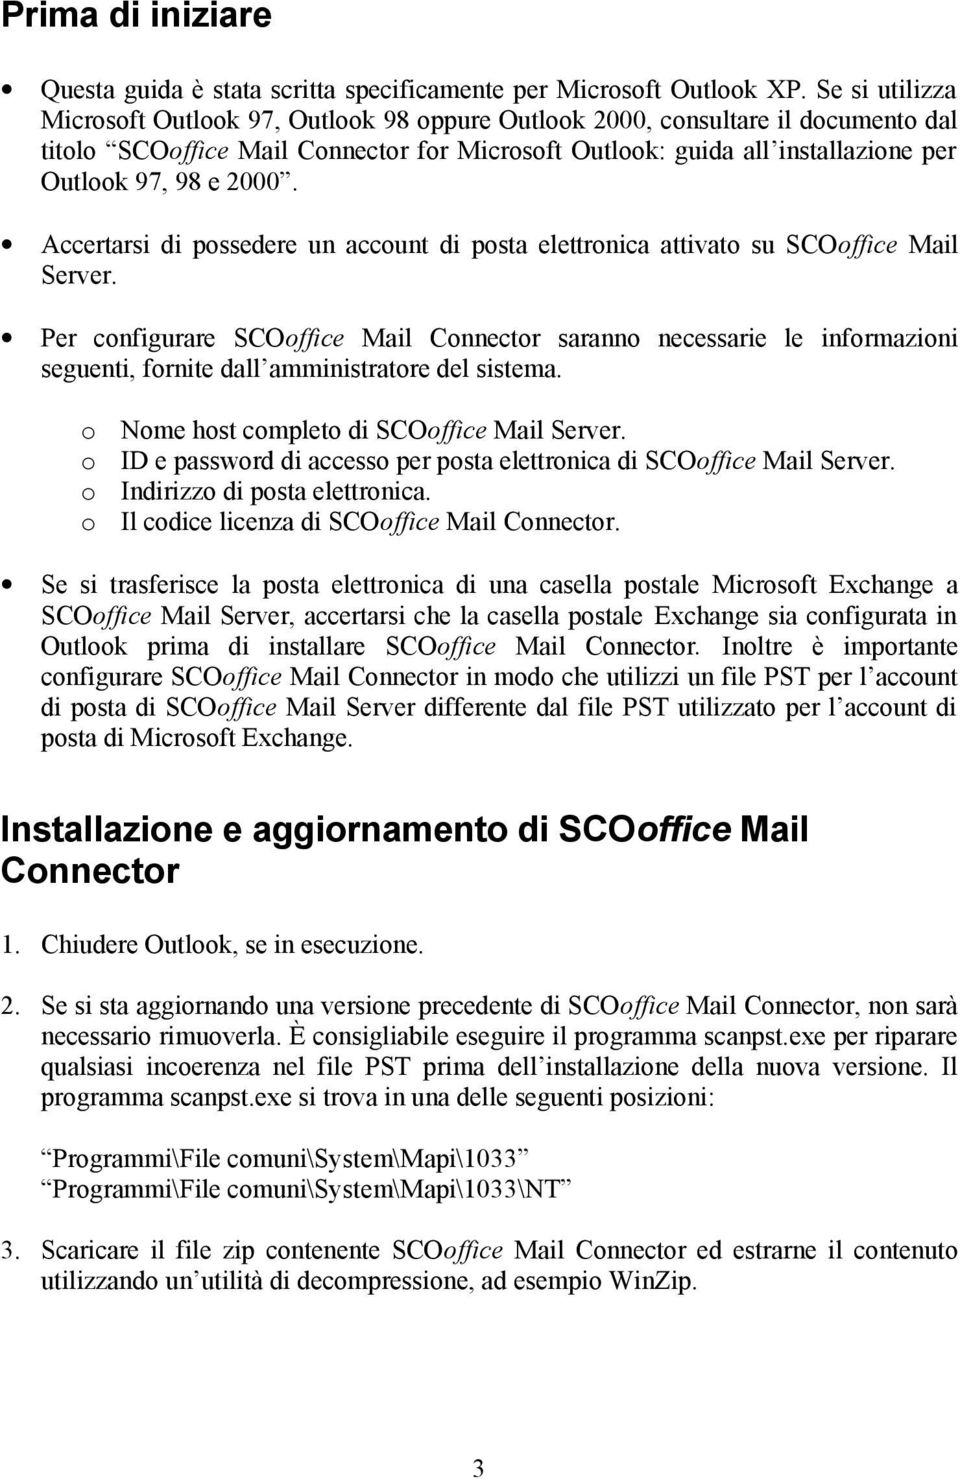 2000. Accertarsi di possedere un account di posta elettronica attivato su SCOoffice Mail Server.